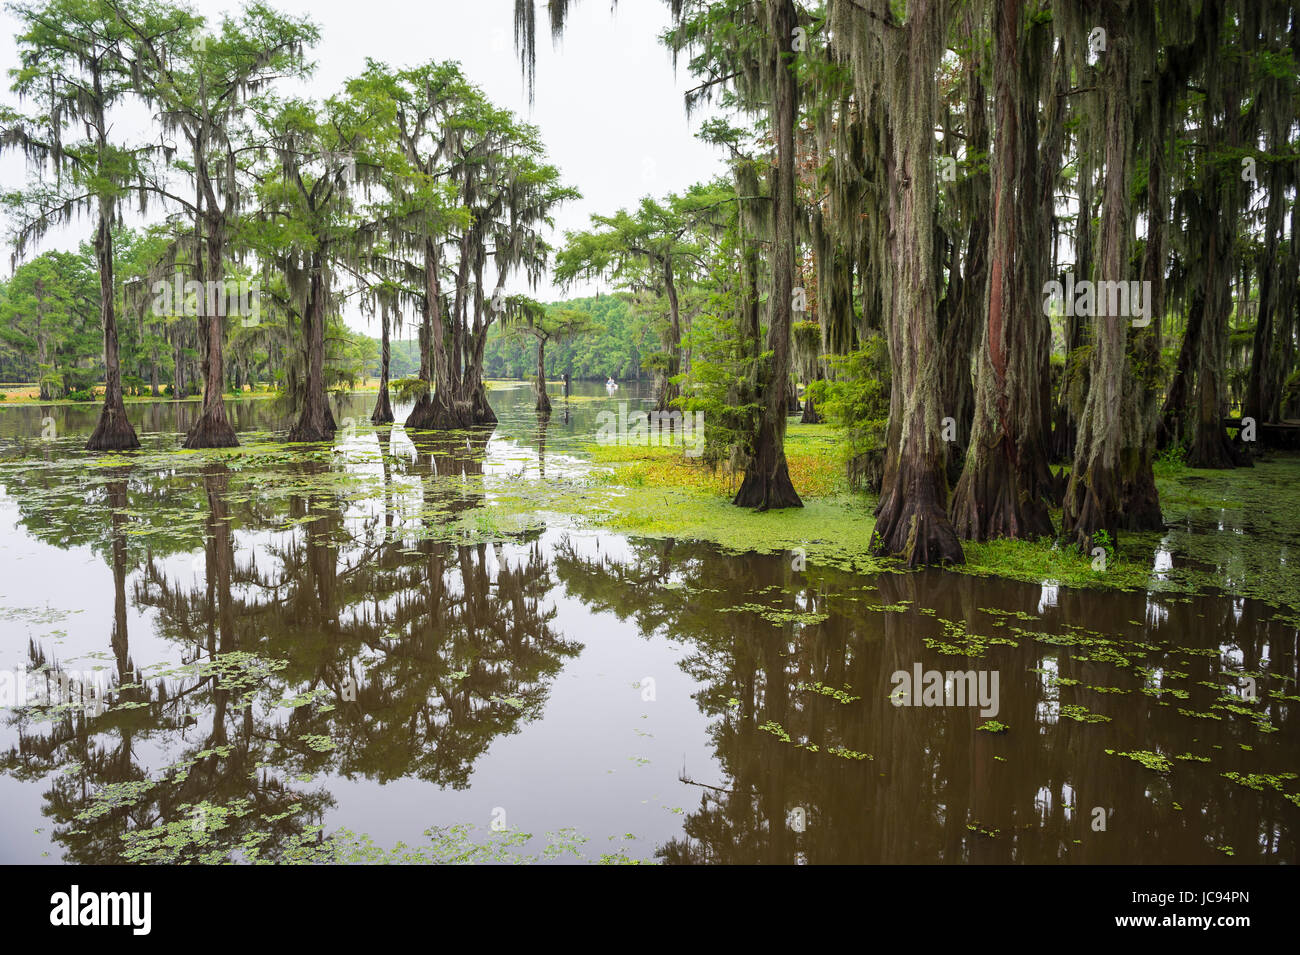 Classic bayou swamp scene of the American South featuring bald cypress trees reflecting on murky water in Caddo - Stock Image